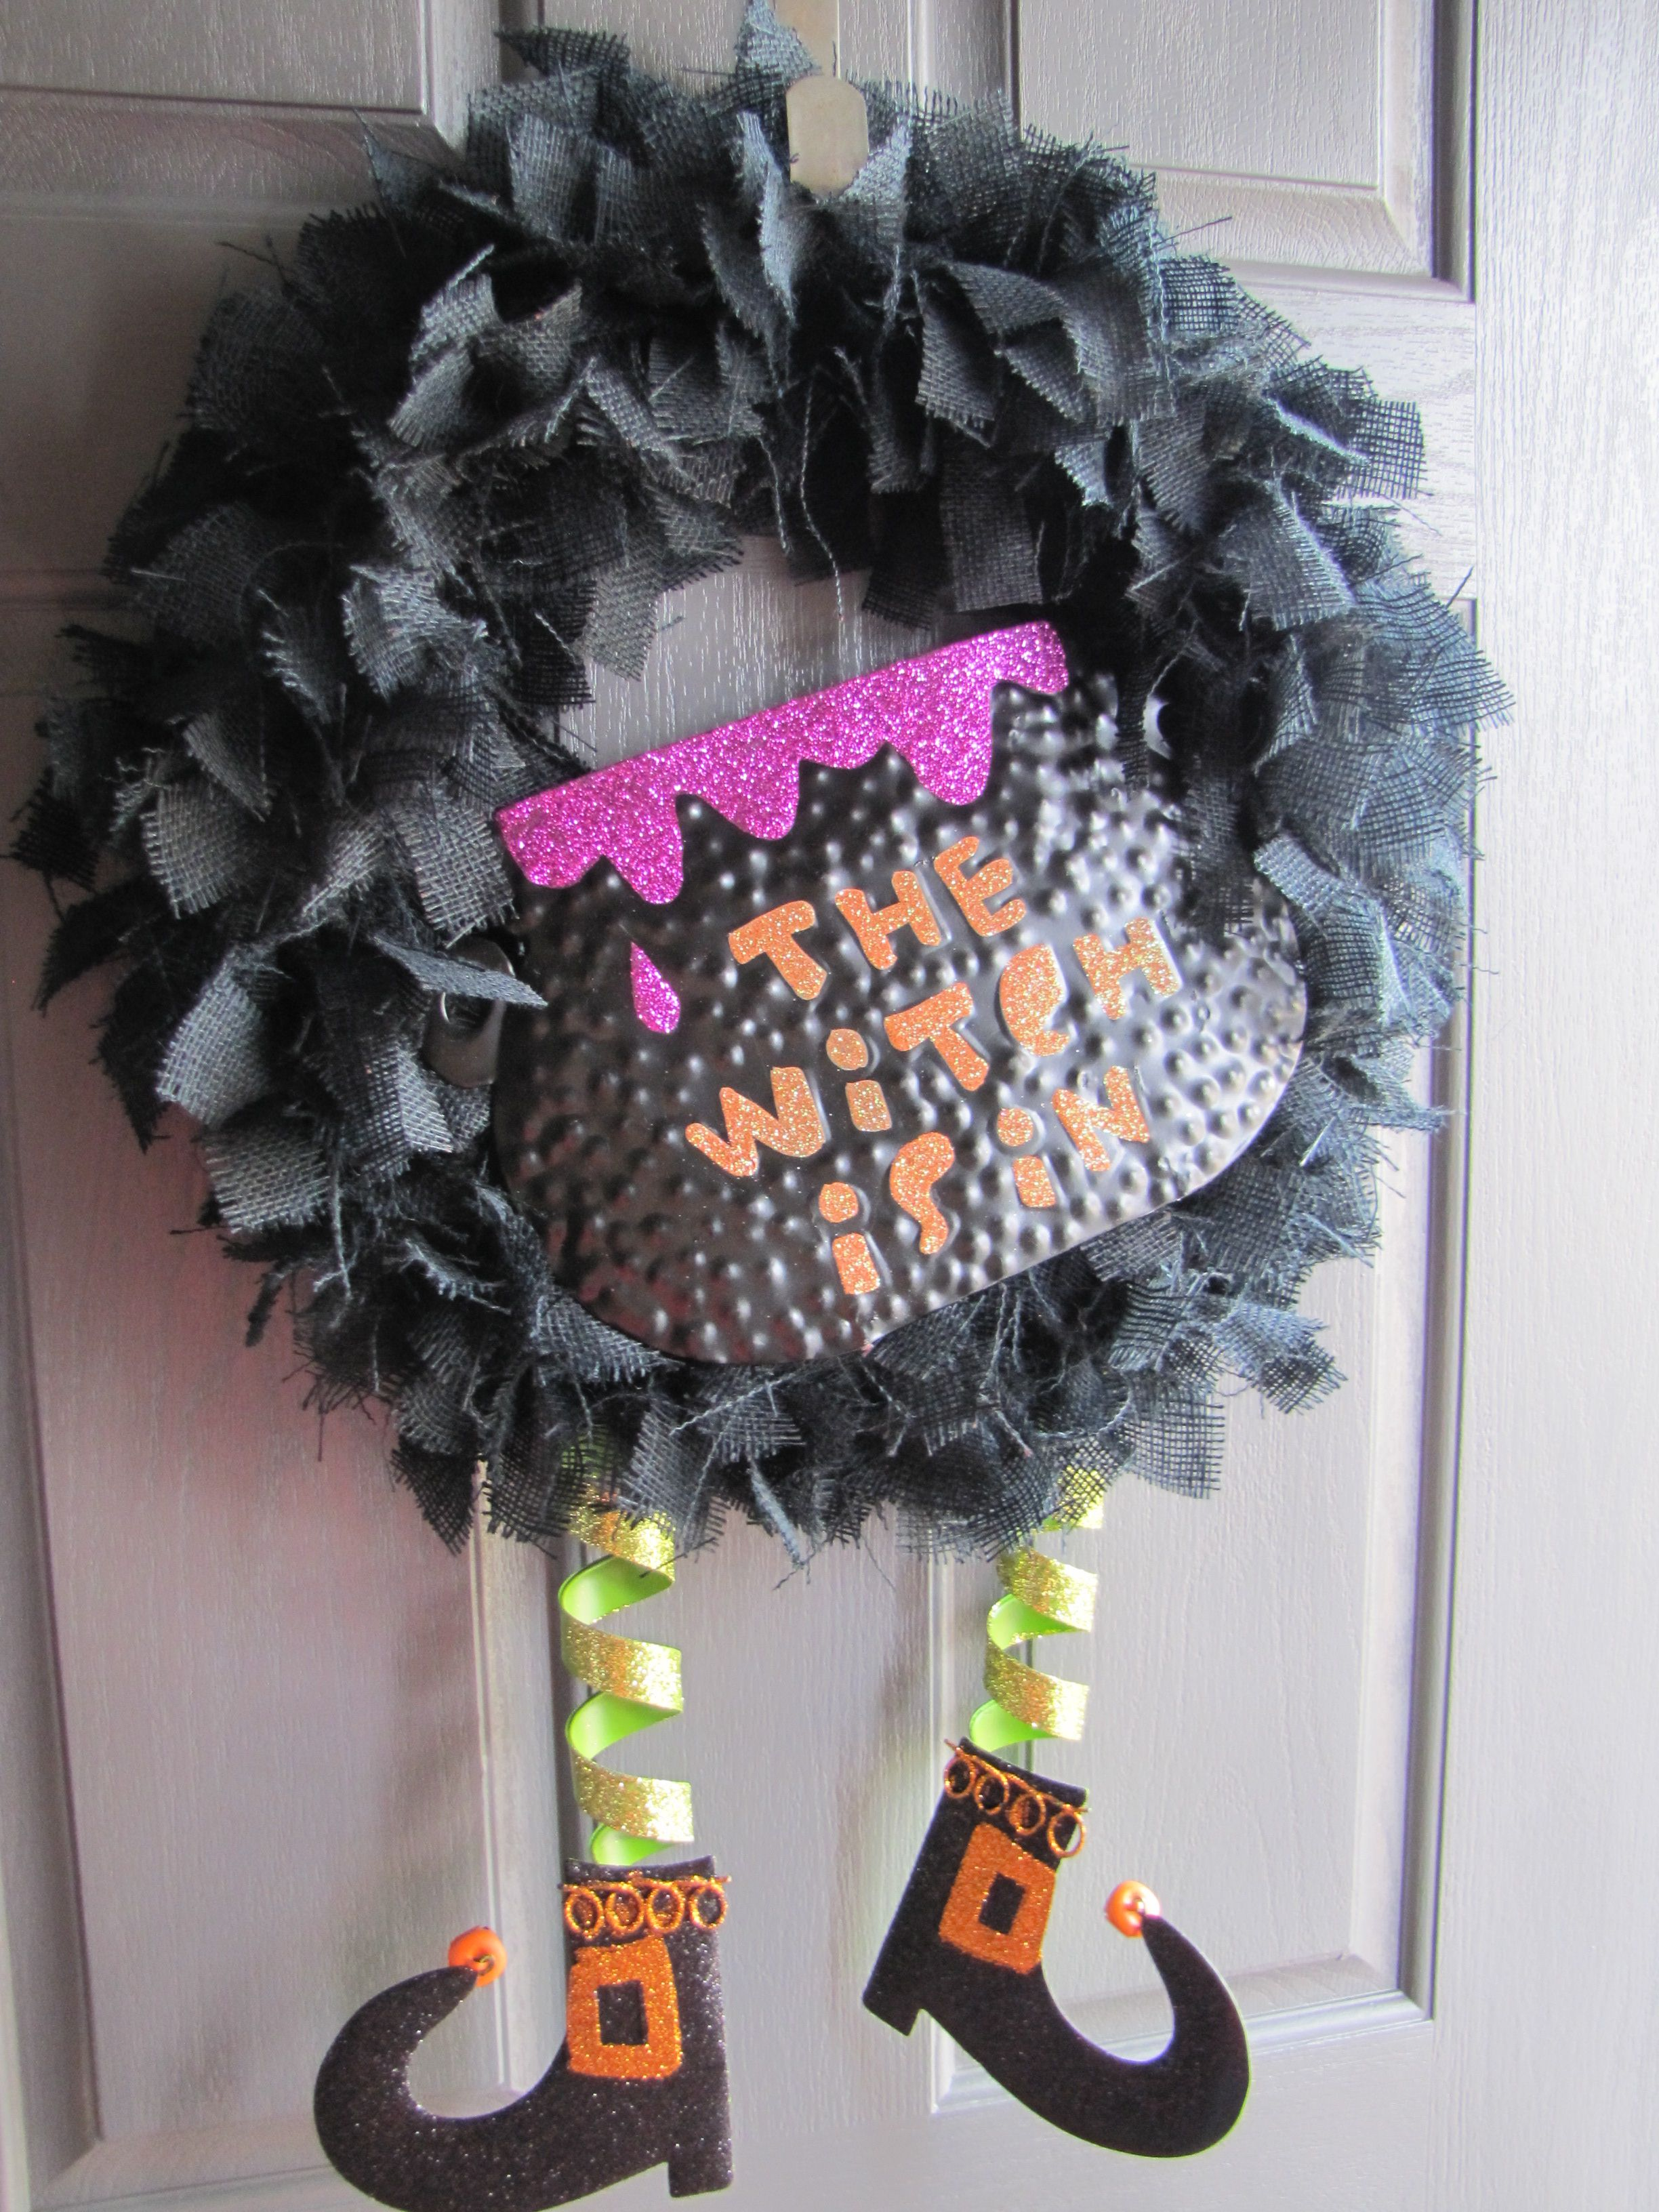 Burlap wreath w/ decoration from Hobby Lobby Halloween Pinterest - Hobby Lobby Halloween Decorations